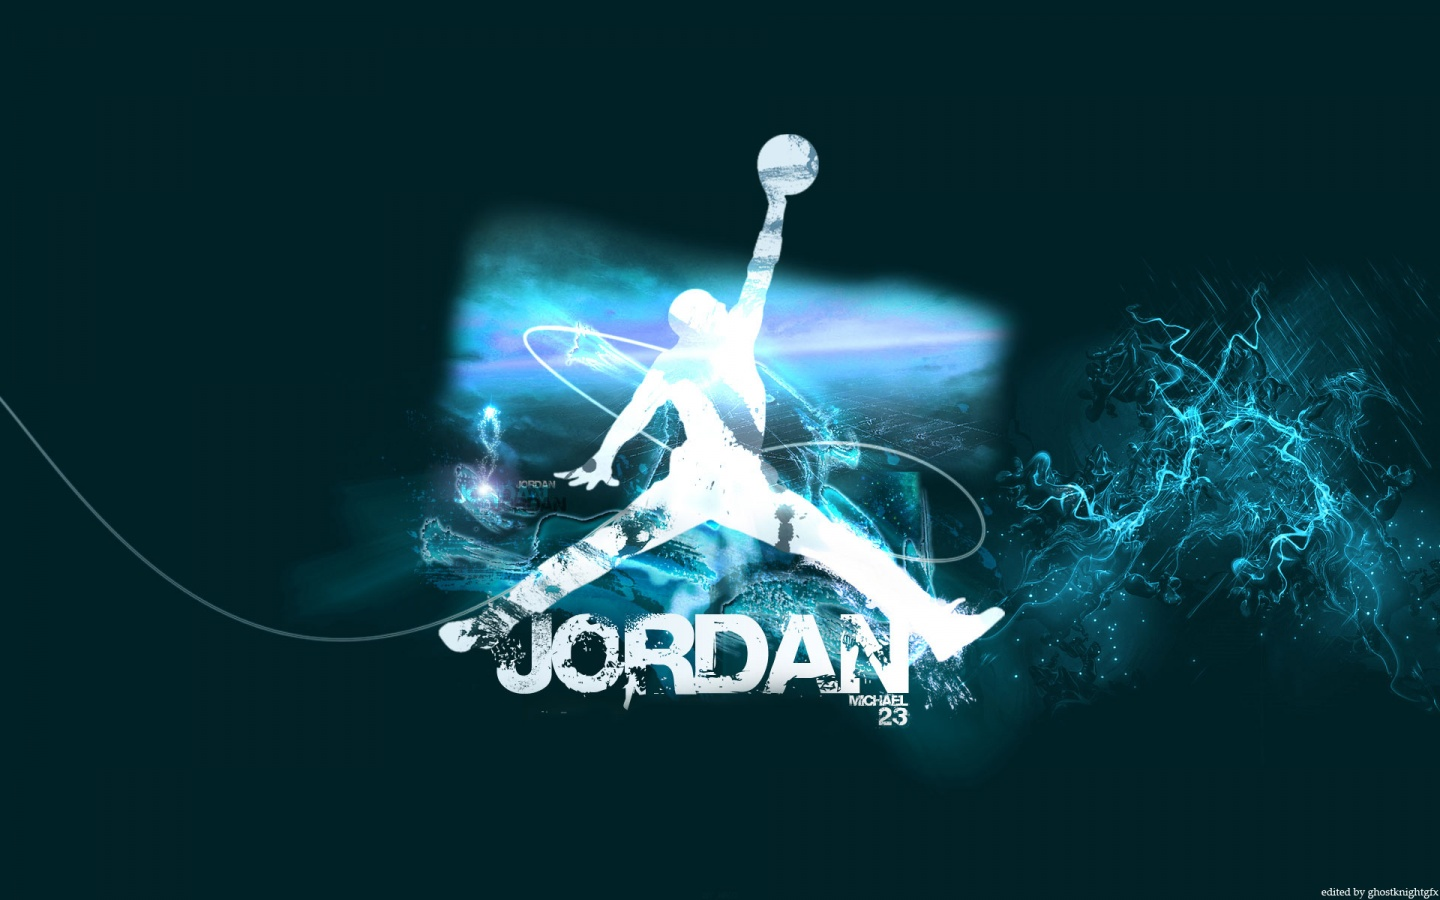 Pin free download michael jordan wallpaper 28957 hd wallpapers on - Air Jordan Logo Wallpaper 5162 Hd Wallpapers In Logos Imagesci Com